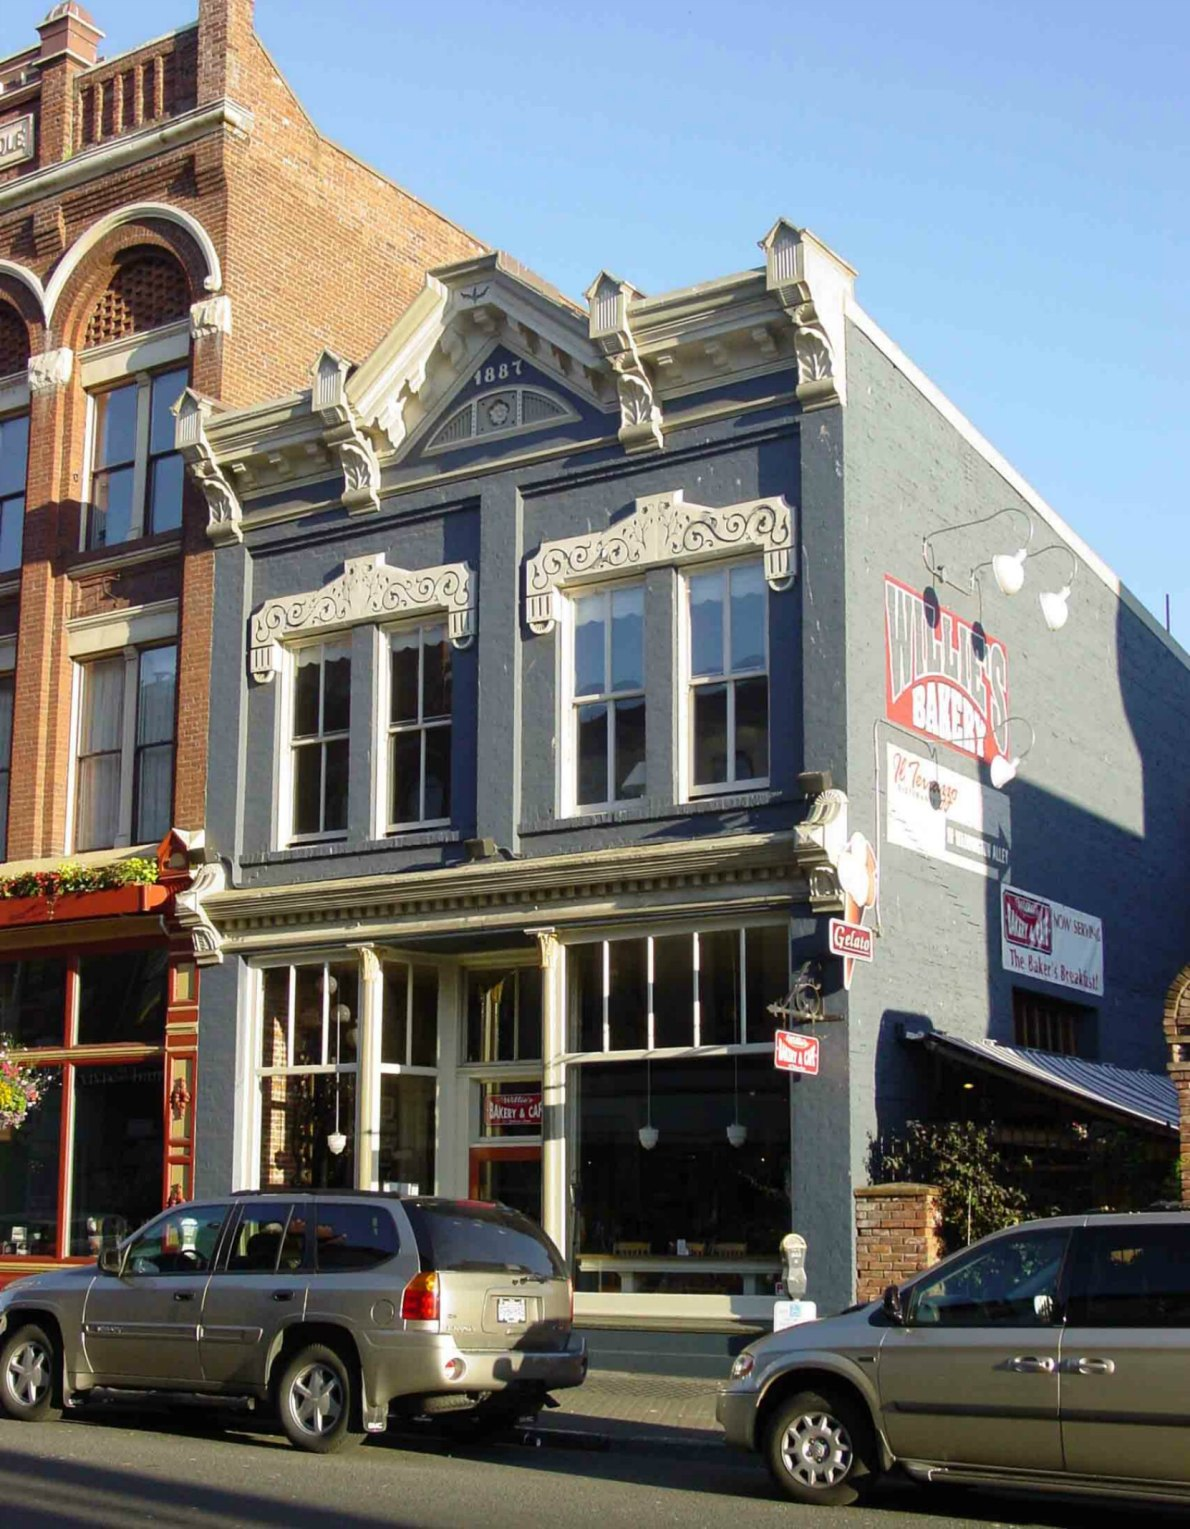 537 Johnson Street, Wille's Bakery, built in 1887 by architect Elmer H. Fisher for Louis Wille.